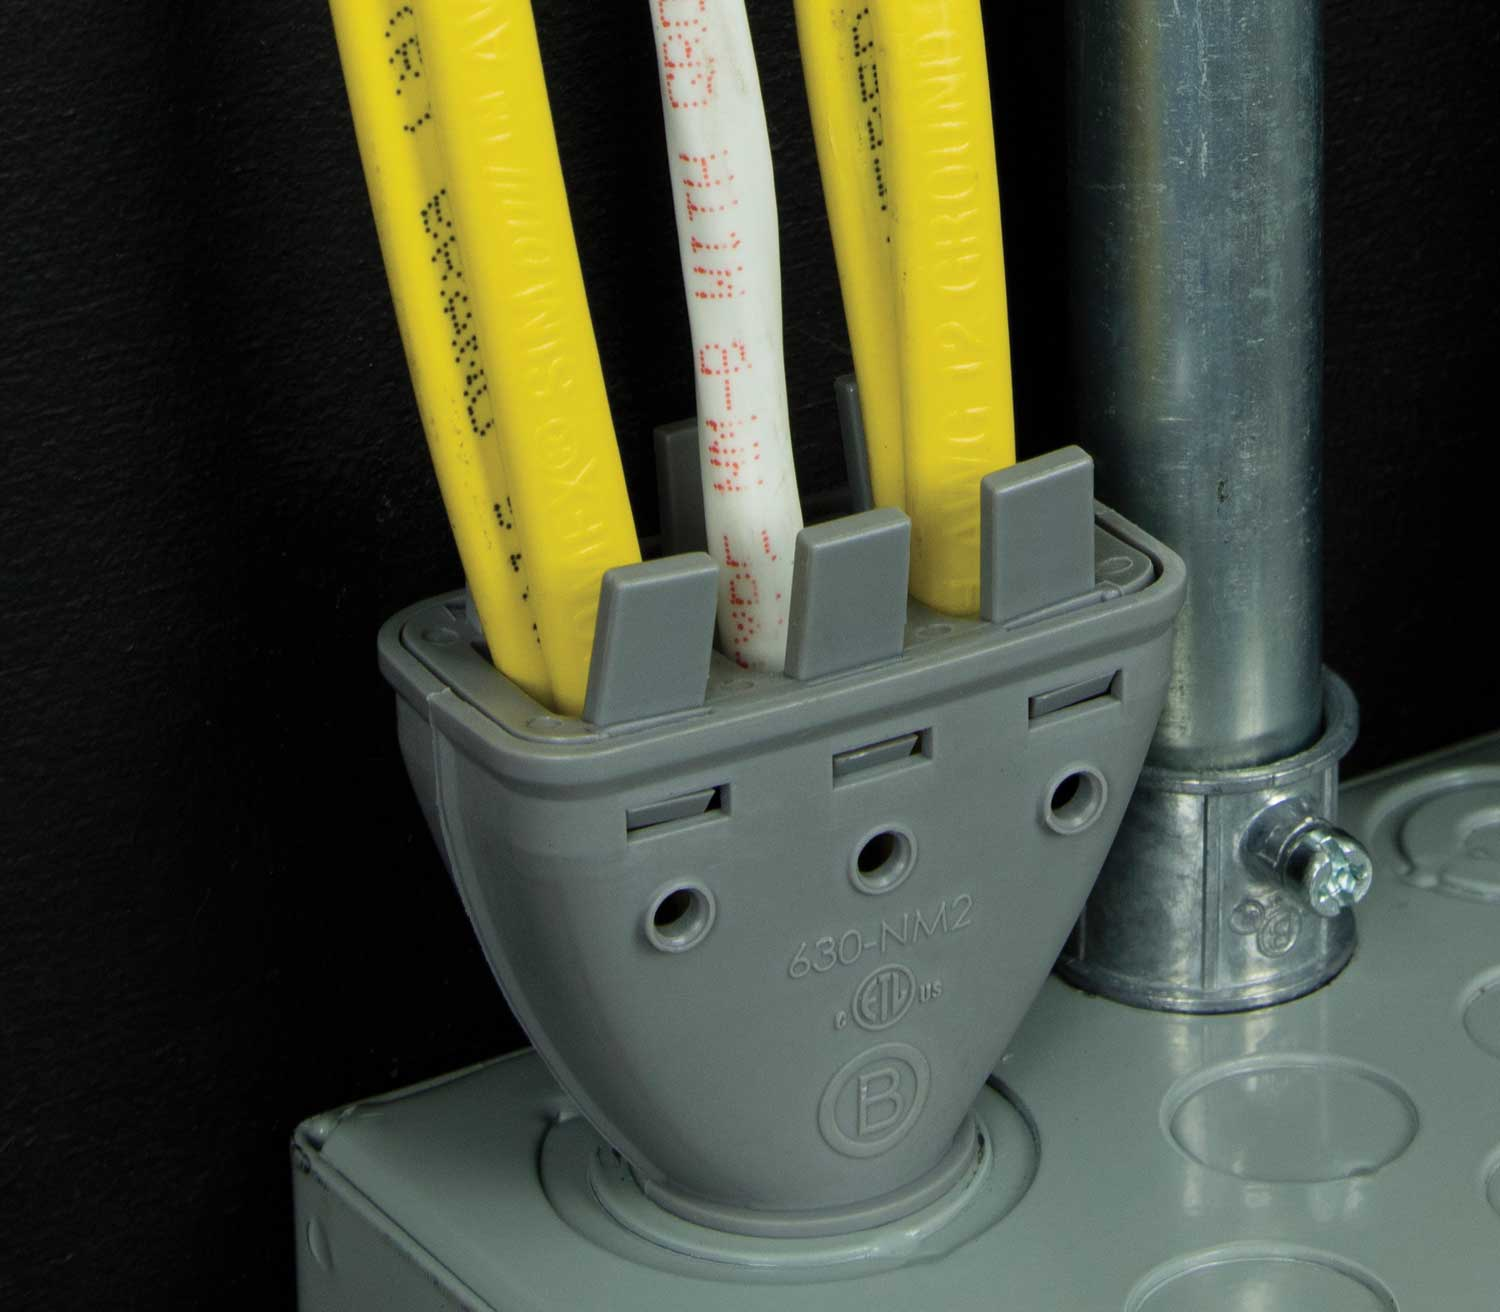 Bridgeport's new Mighty-Merge 630-NM2 Fittings make cable installation easier